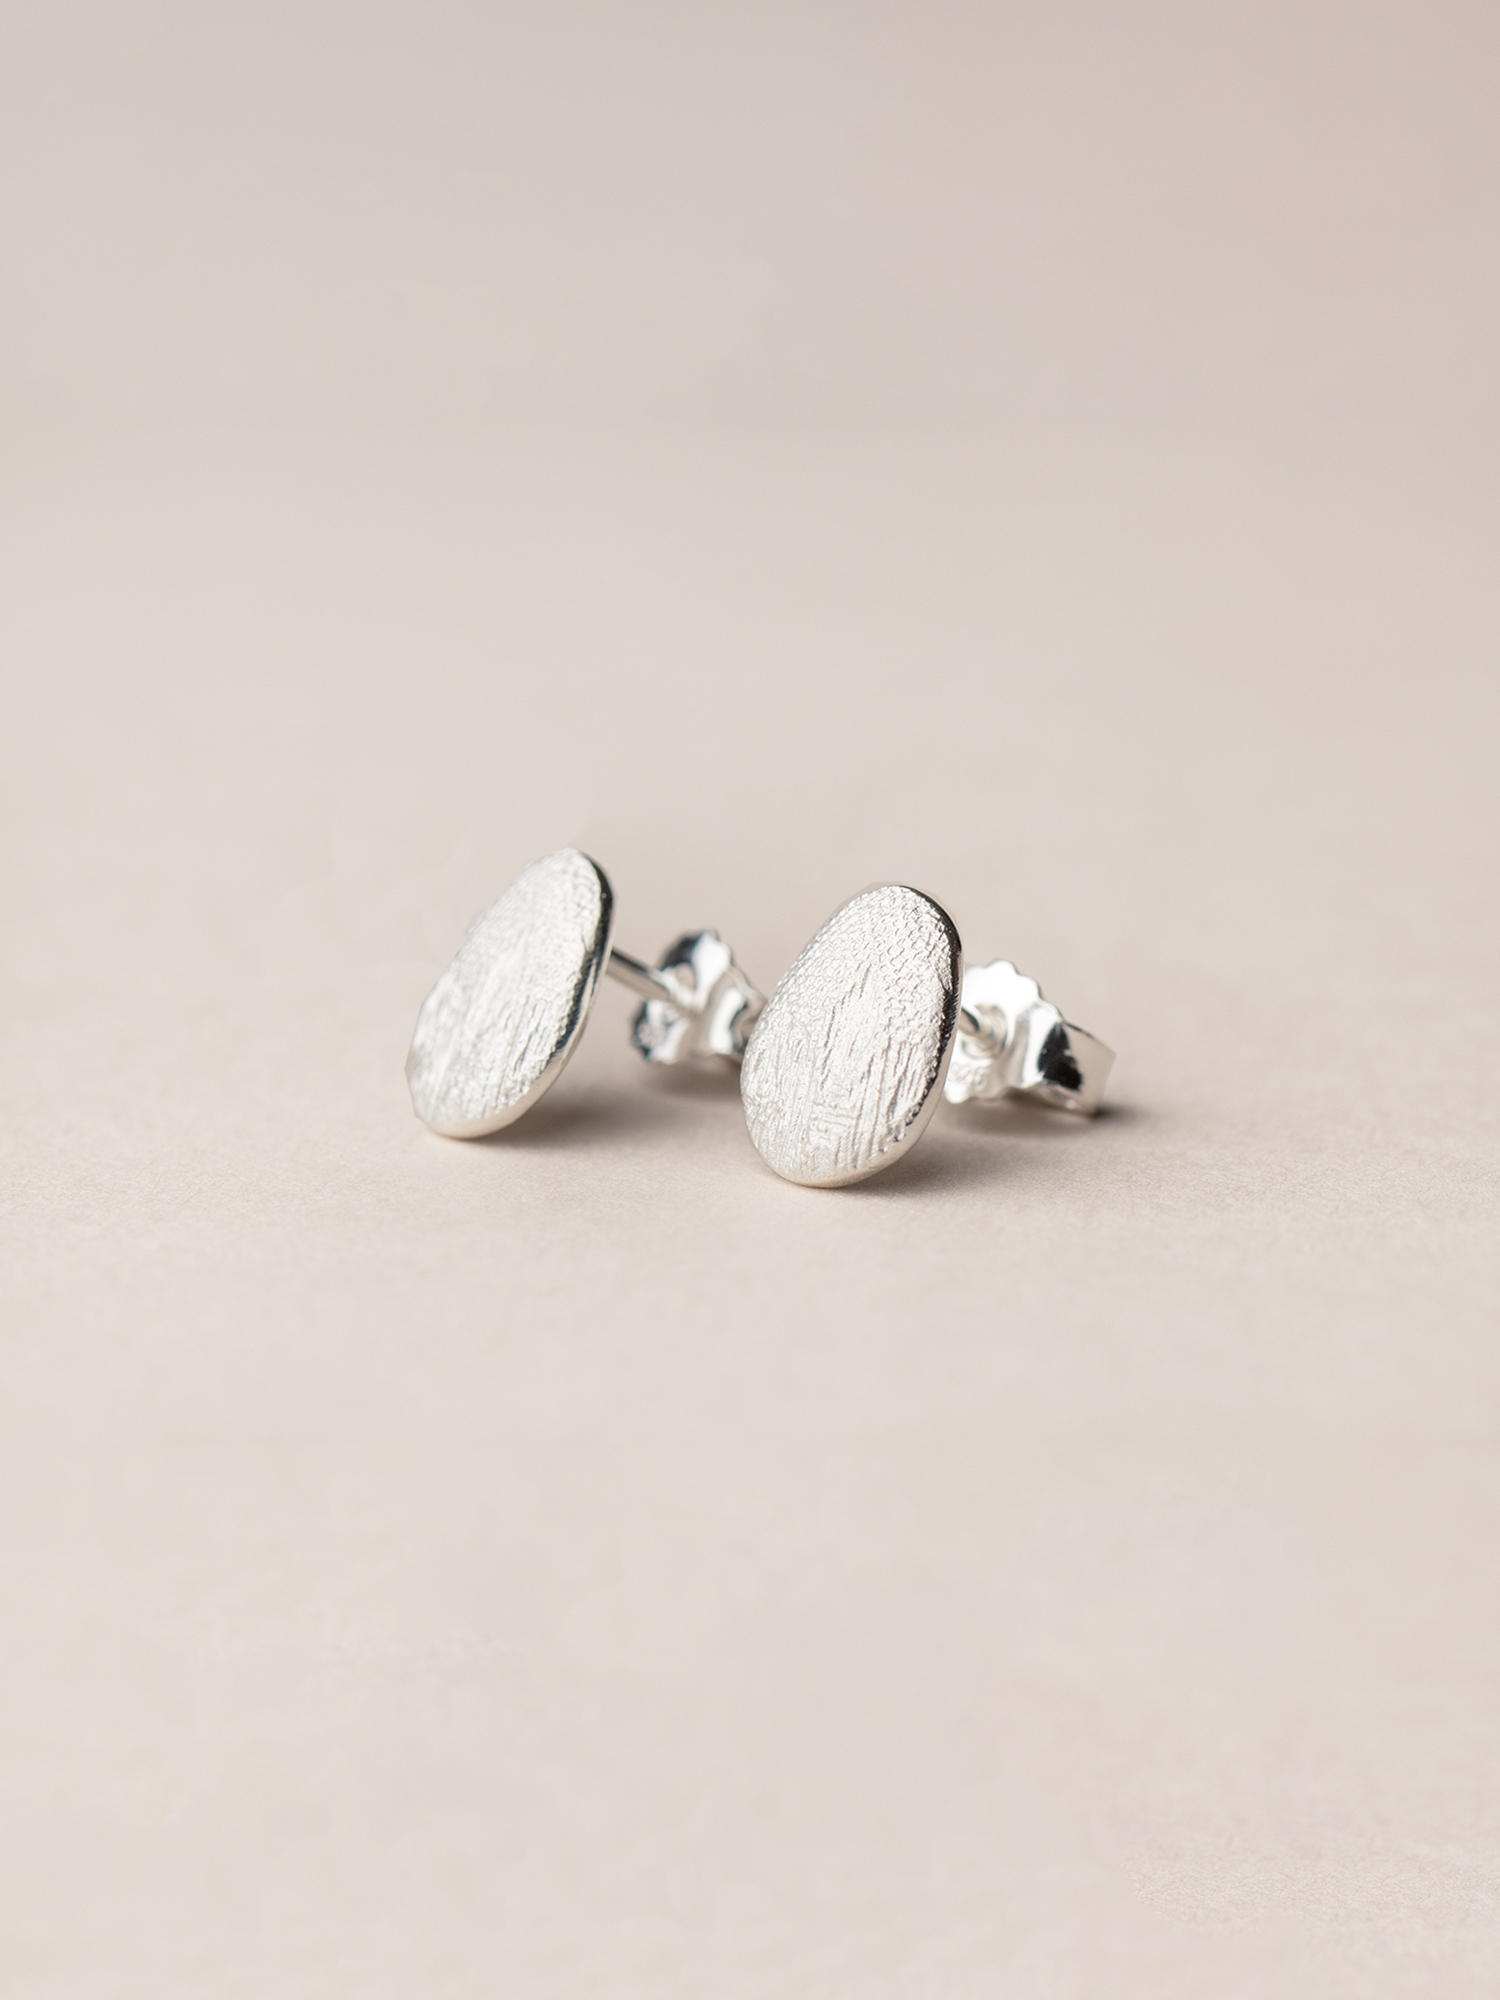 Ovale Amia-Ohrstecker in 925 Silber  Amia, oval stud earrings in sterling silver